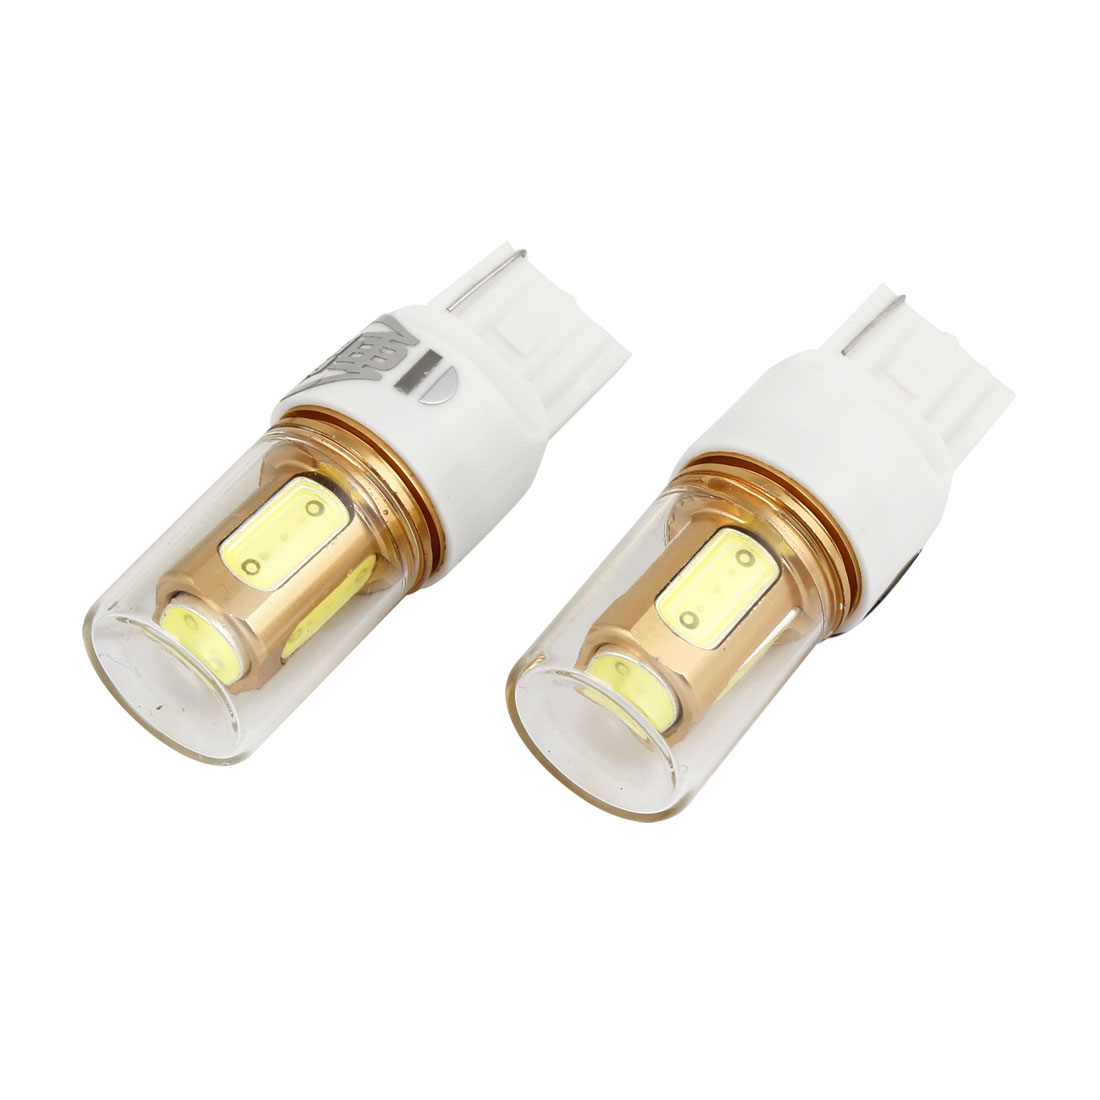 2 Pcs Glass Shell White T20 7440 5 SMD LED Car Turning Backup Tail Signal Light 12V